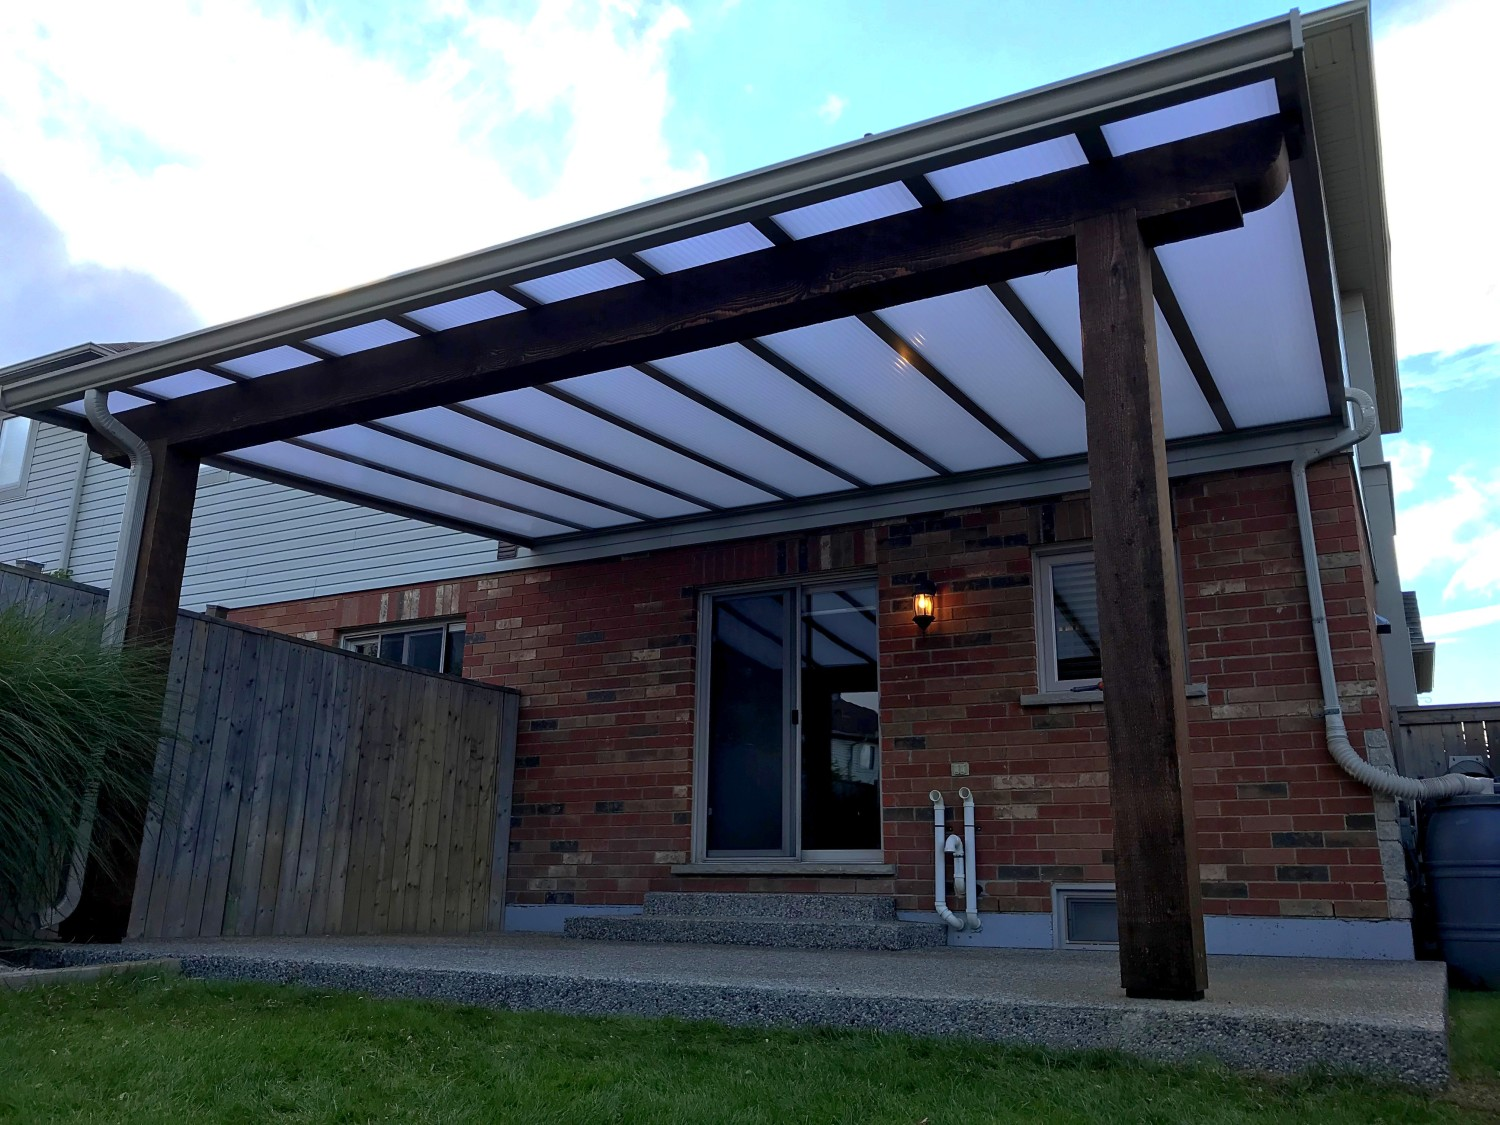 Natural Light Patio Covers Dave Vanam Inc Southern